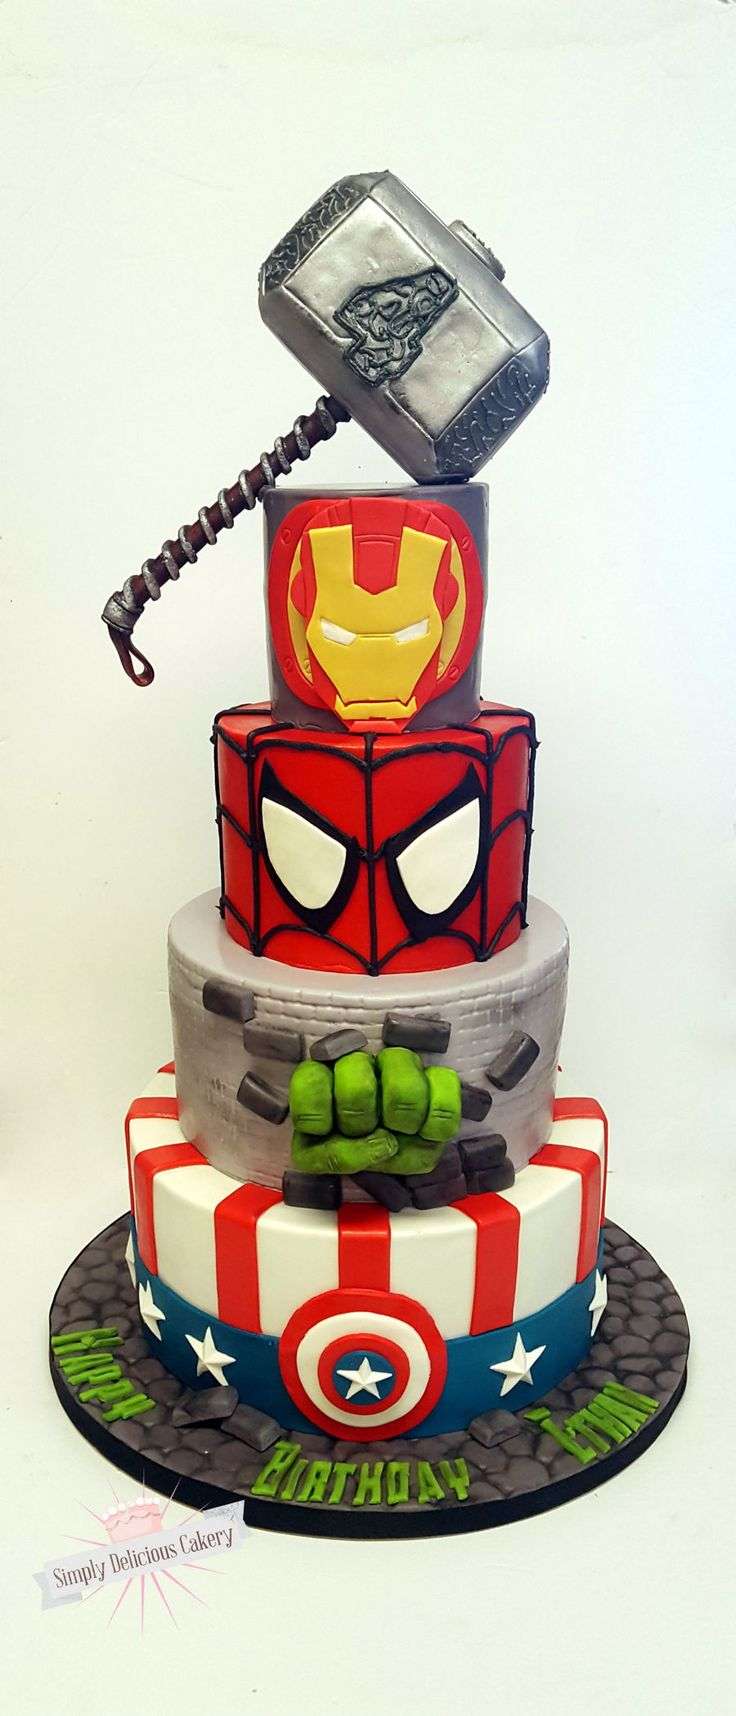 Marvel Avengers Marvel Avengers Cake. Fondant with fondant details, the hulk hand is made from Molding chocolate and the Thor hammer is RKT...